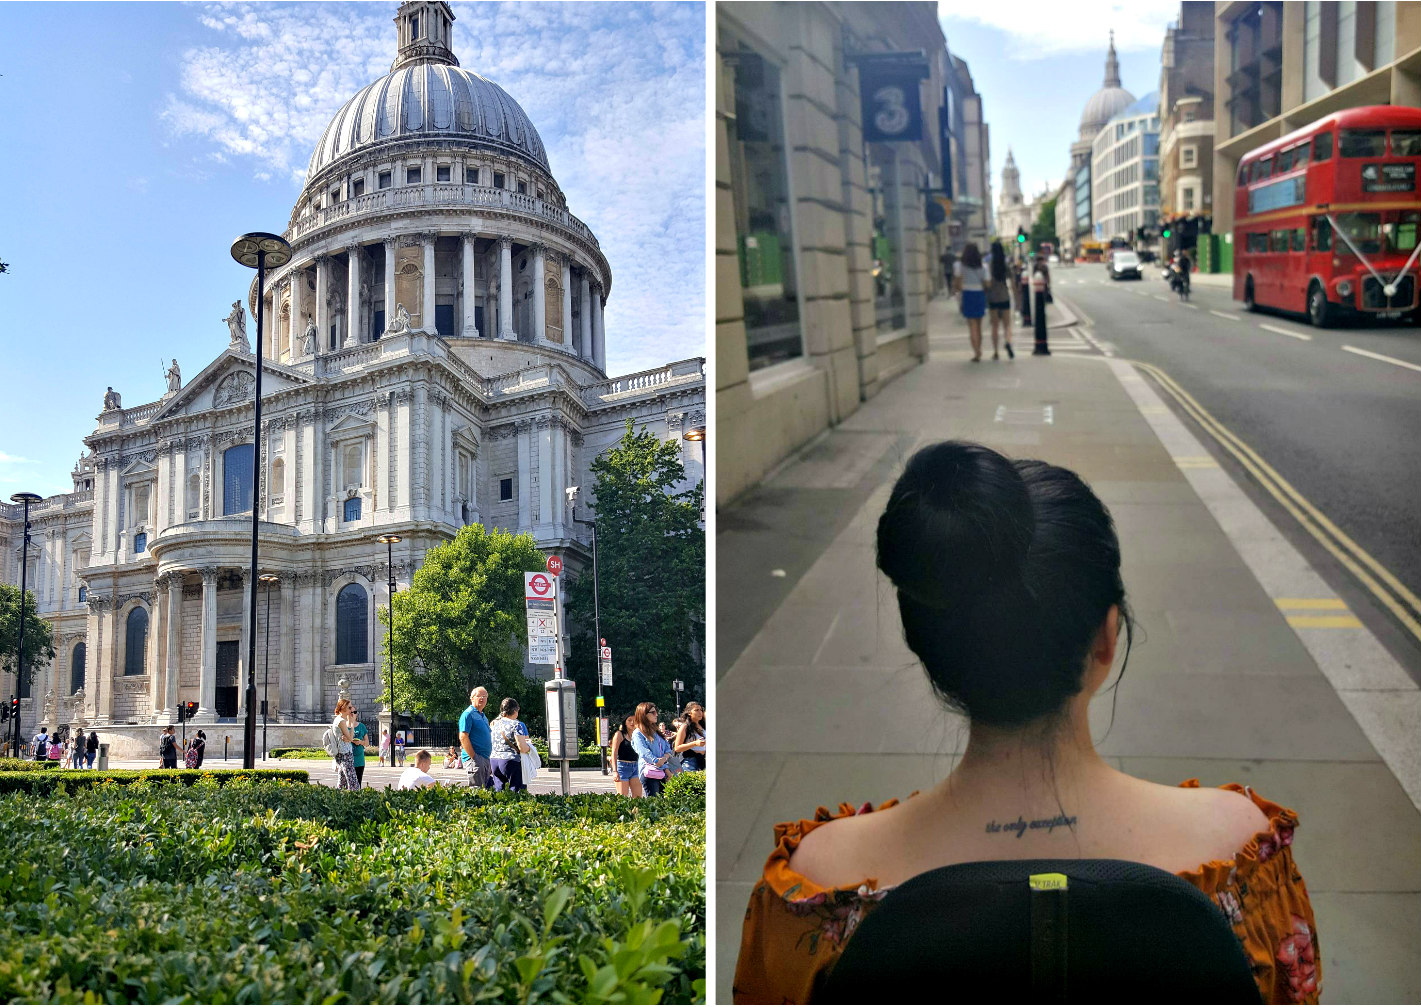 london-photo-diary-St-Paul's-Cathedral-wheelchair-user